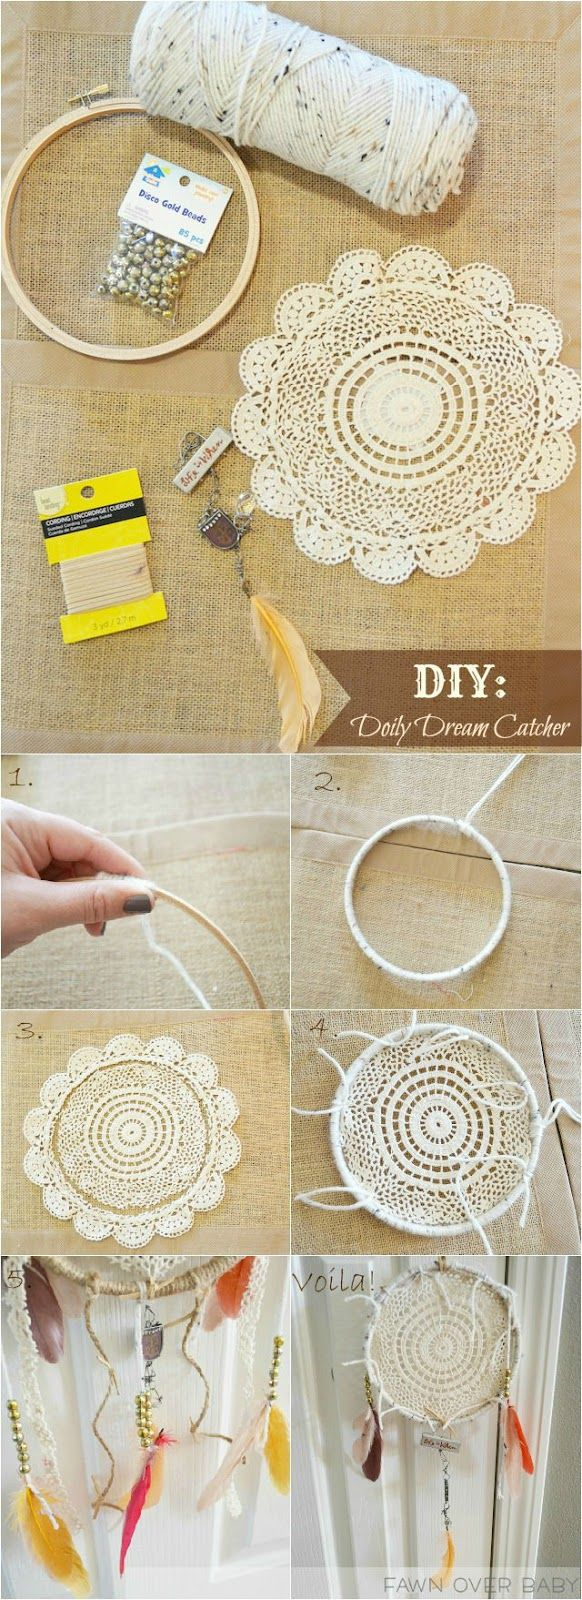 DIY Dreamcatcher with Doilies